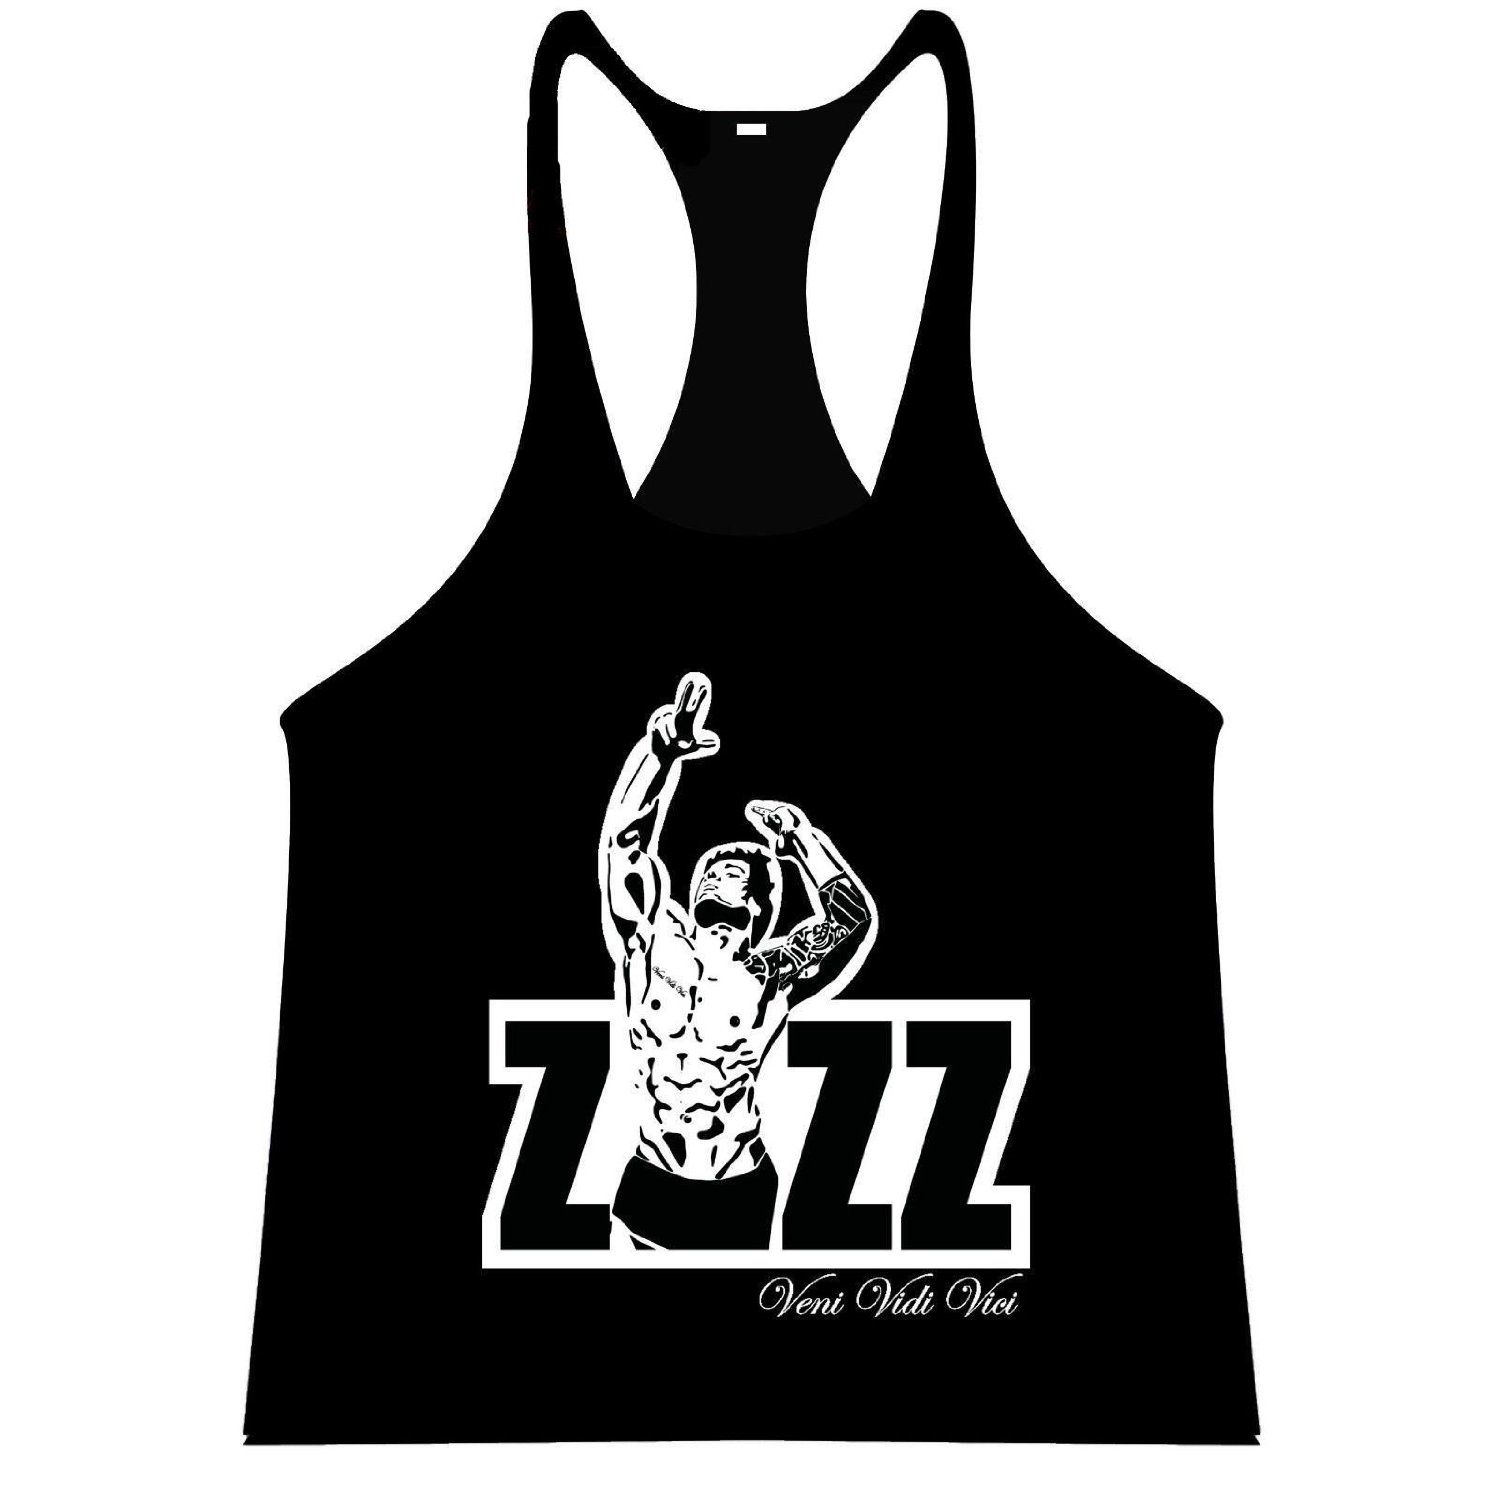 8f9cb09712296 Get Quotations · ZYZZ Official Singlet Tank Top Stringer Vest Bodybuilding  Racerback Y-Back Veni Vidi Vici